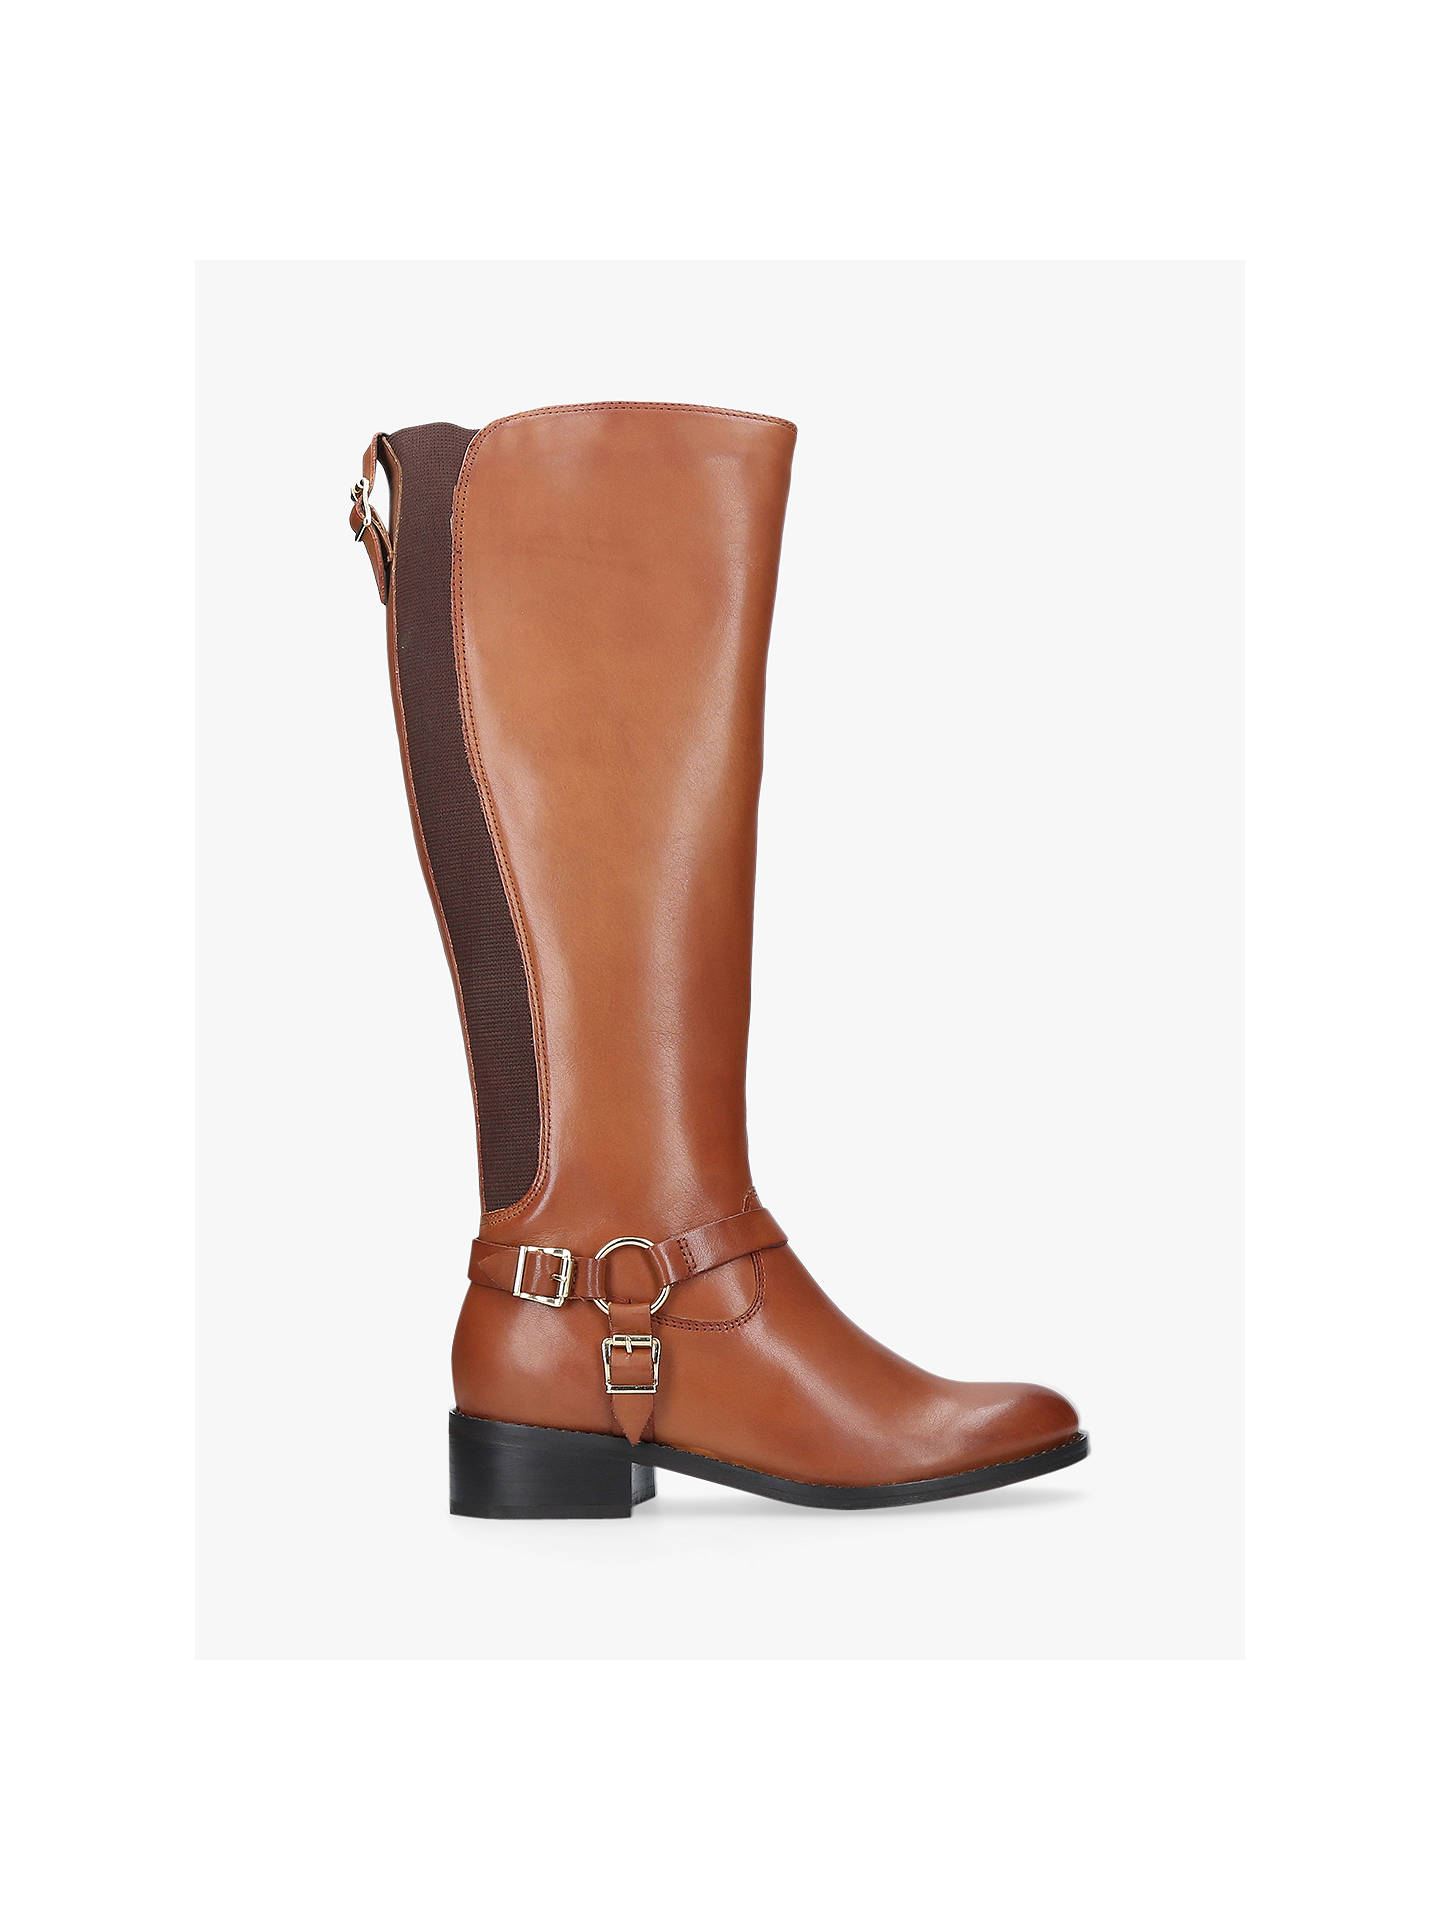 Carvela Petra Knee High Boots, Tan Leather by Carvela